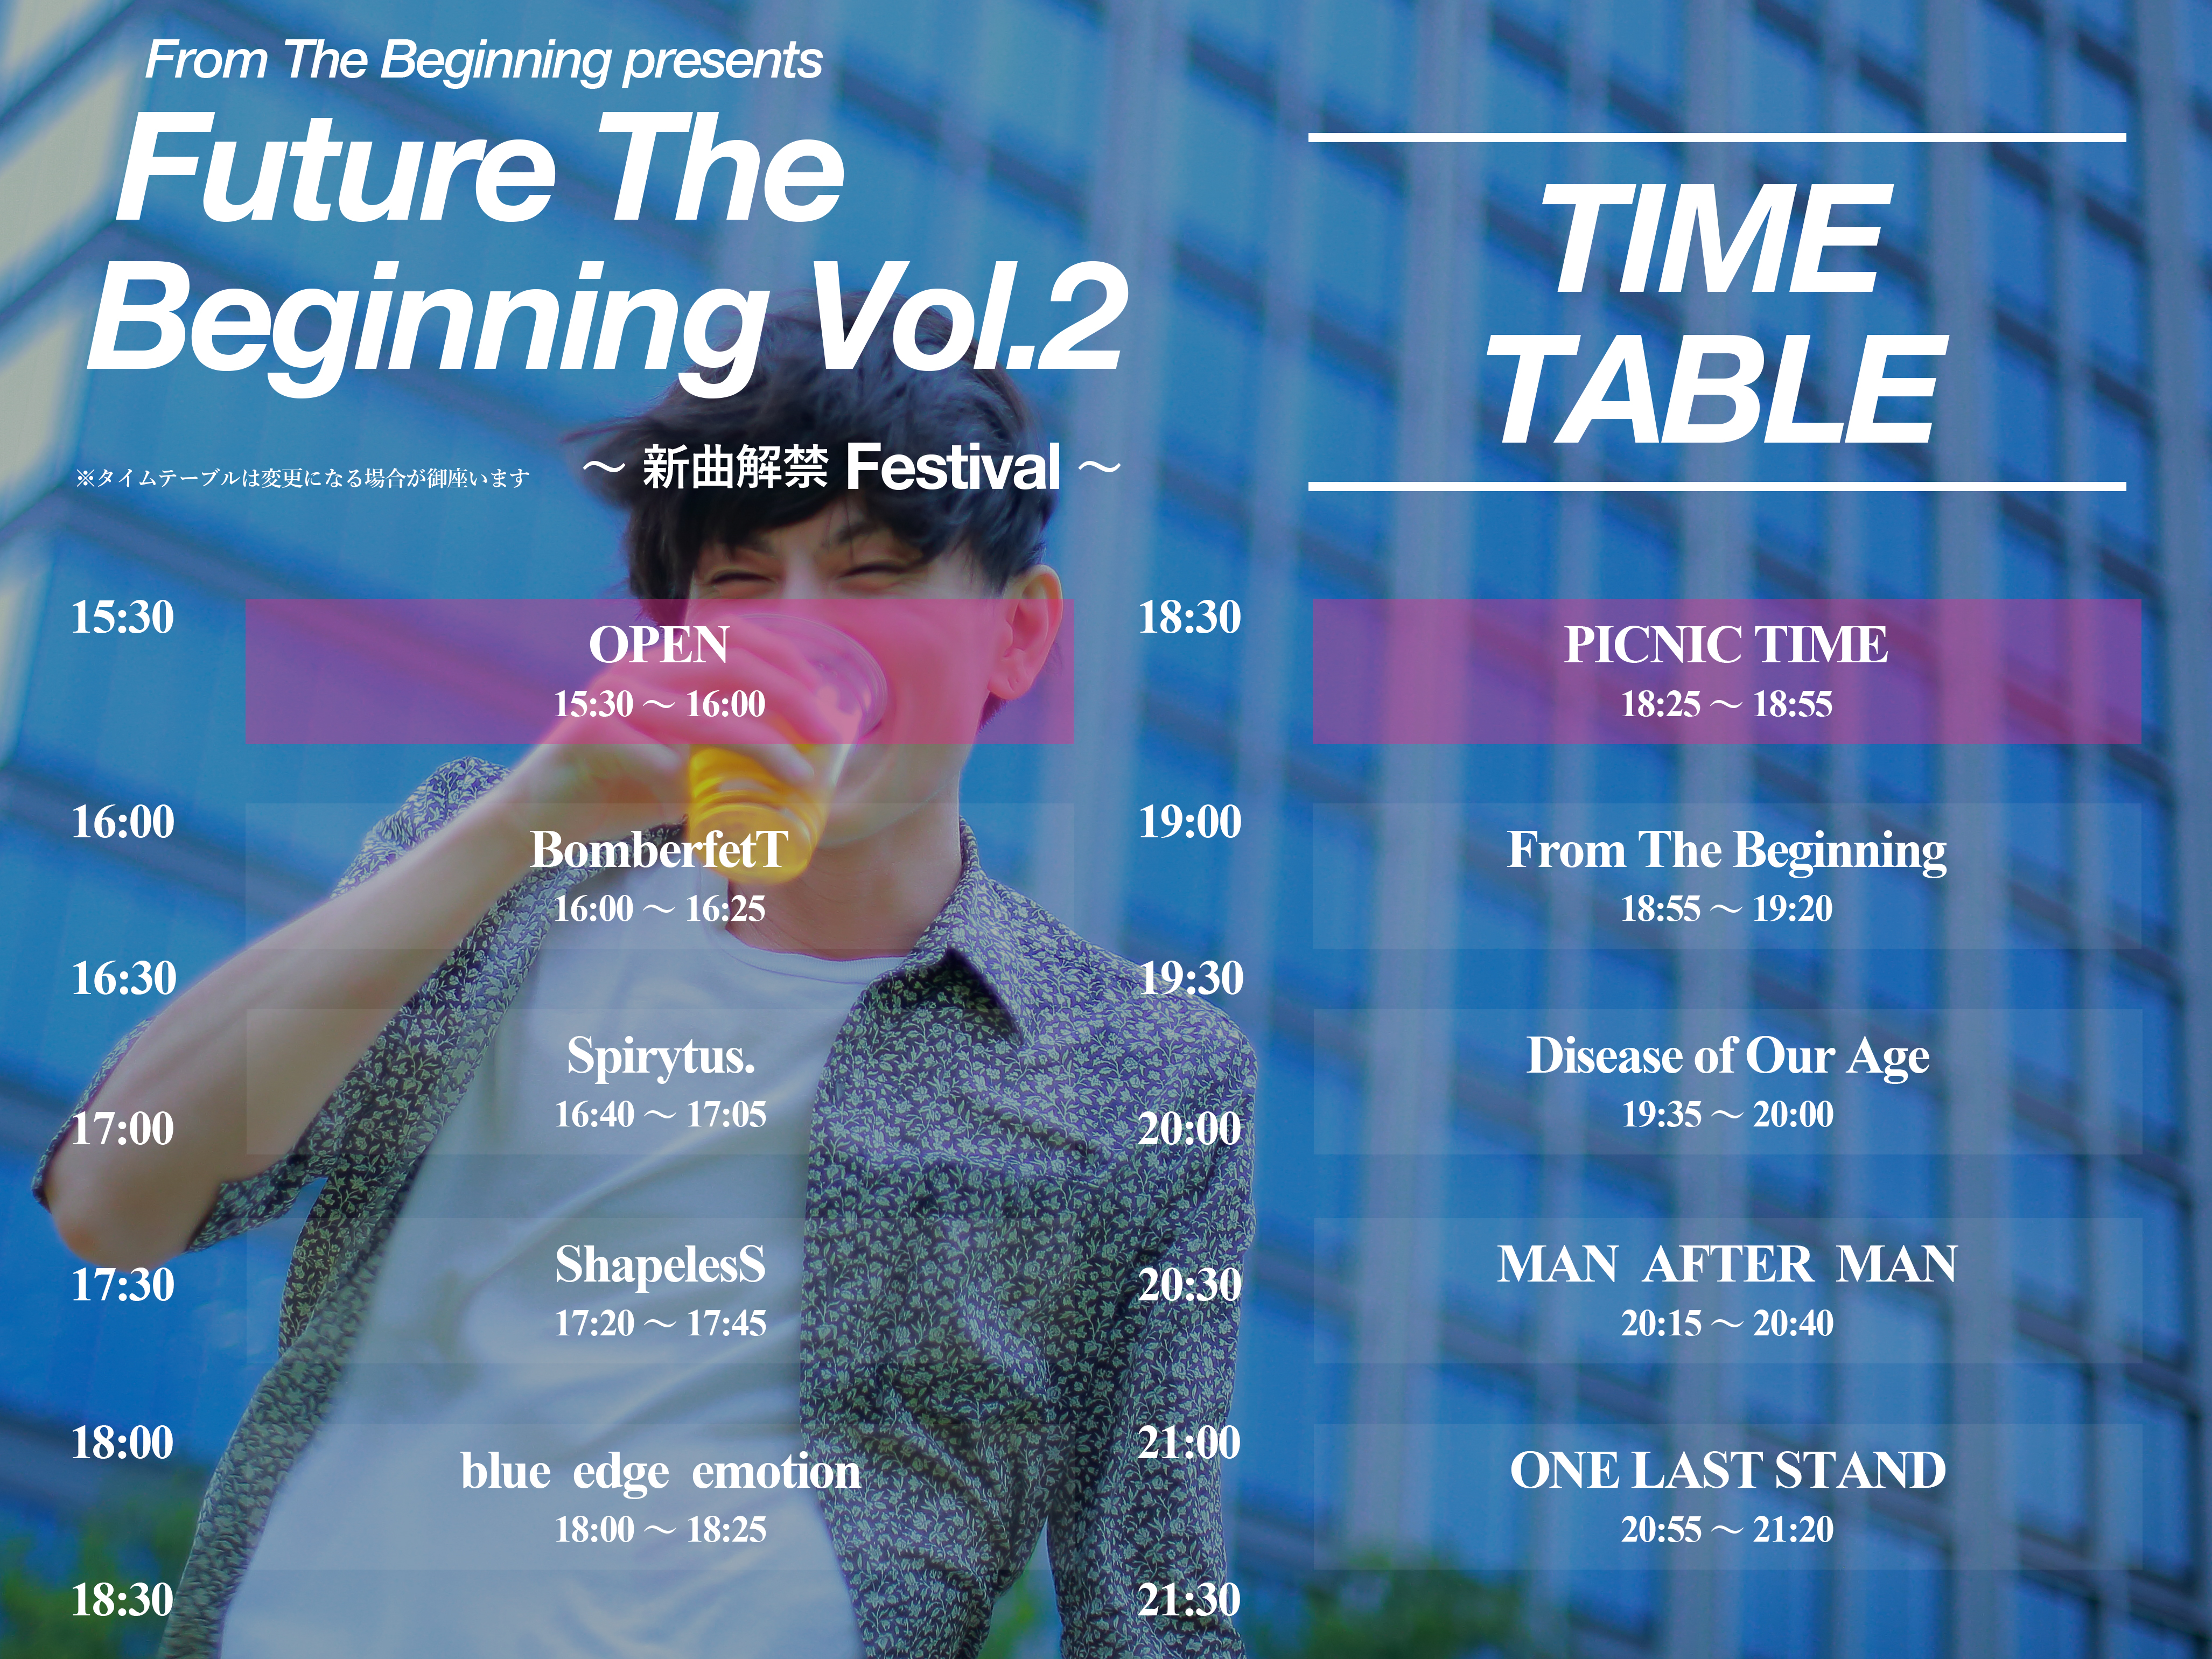 Future The Beginning vol.2 time table